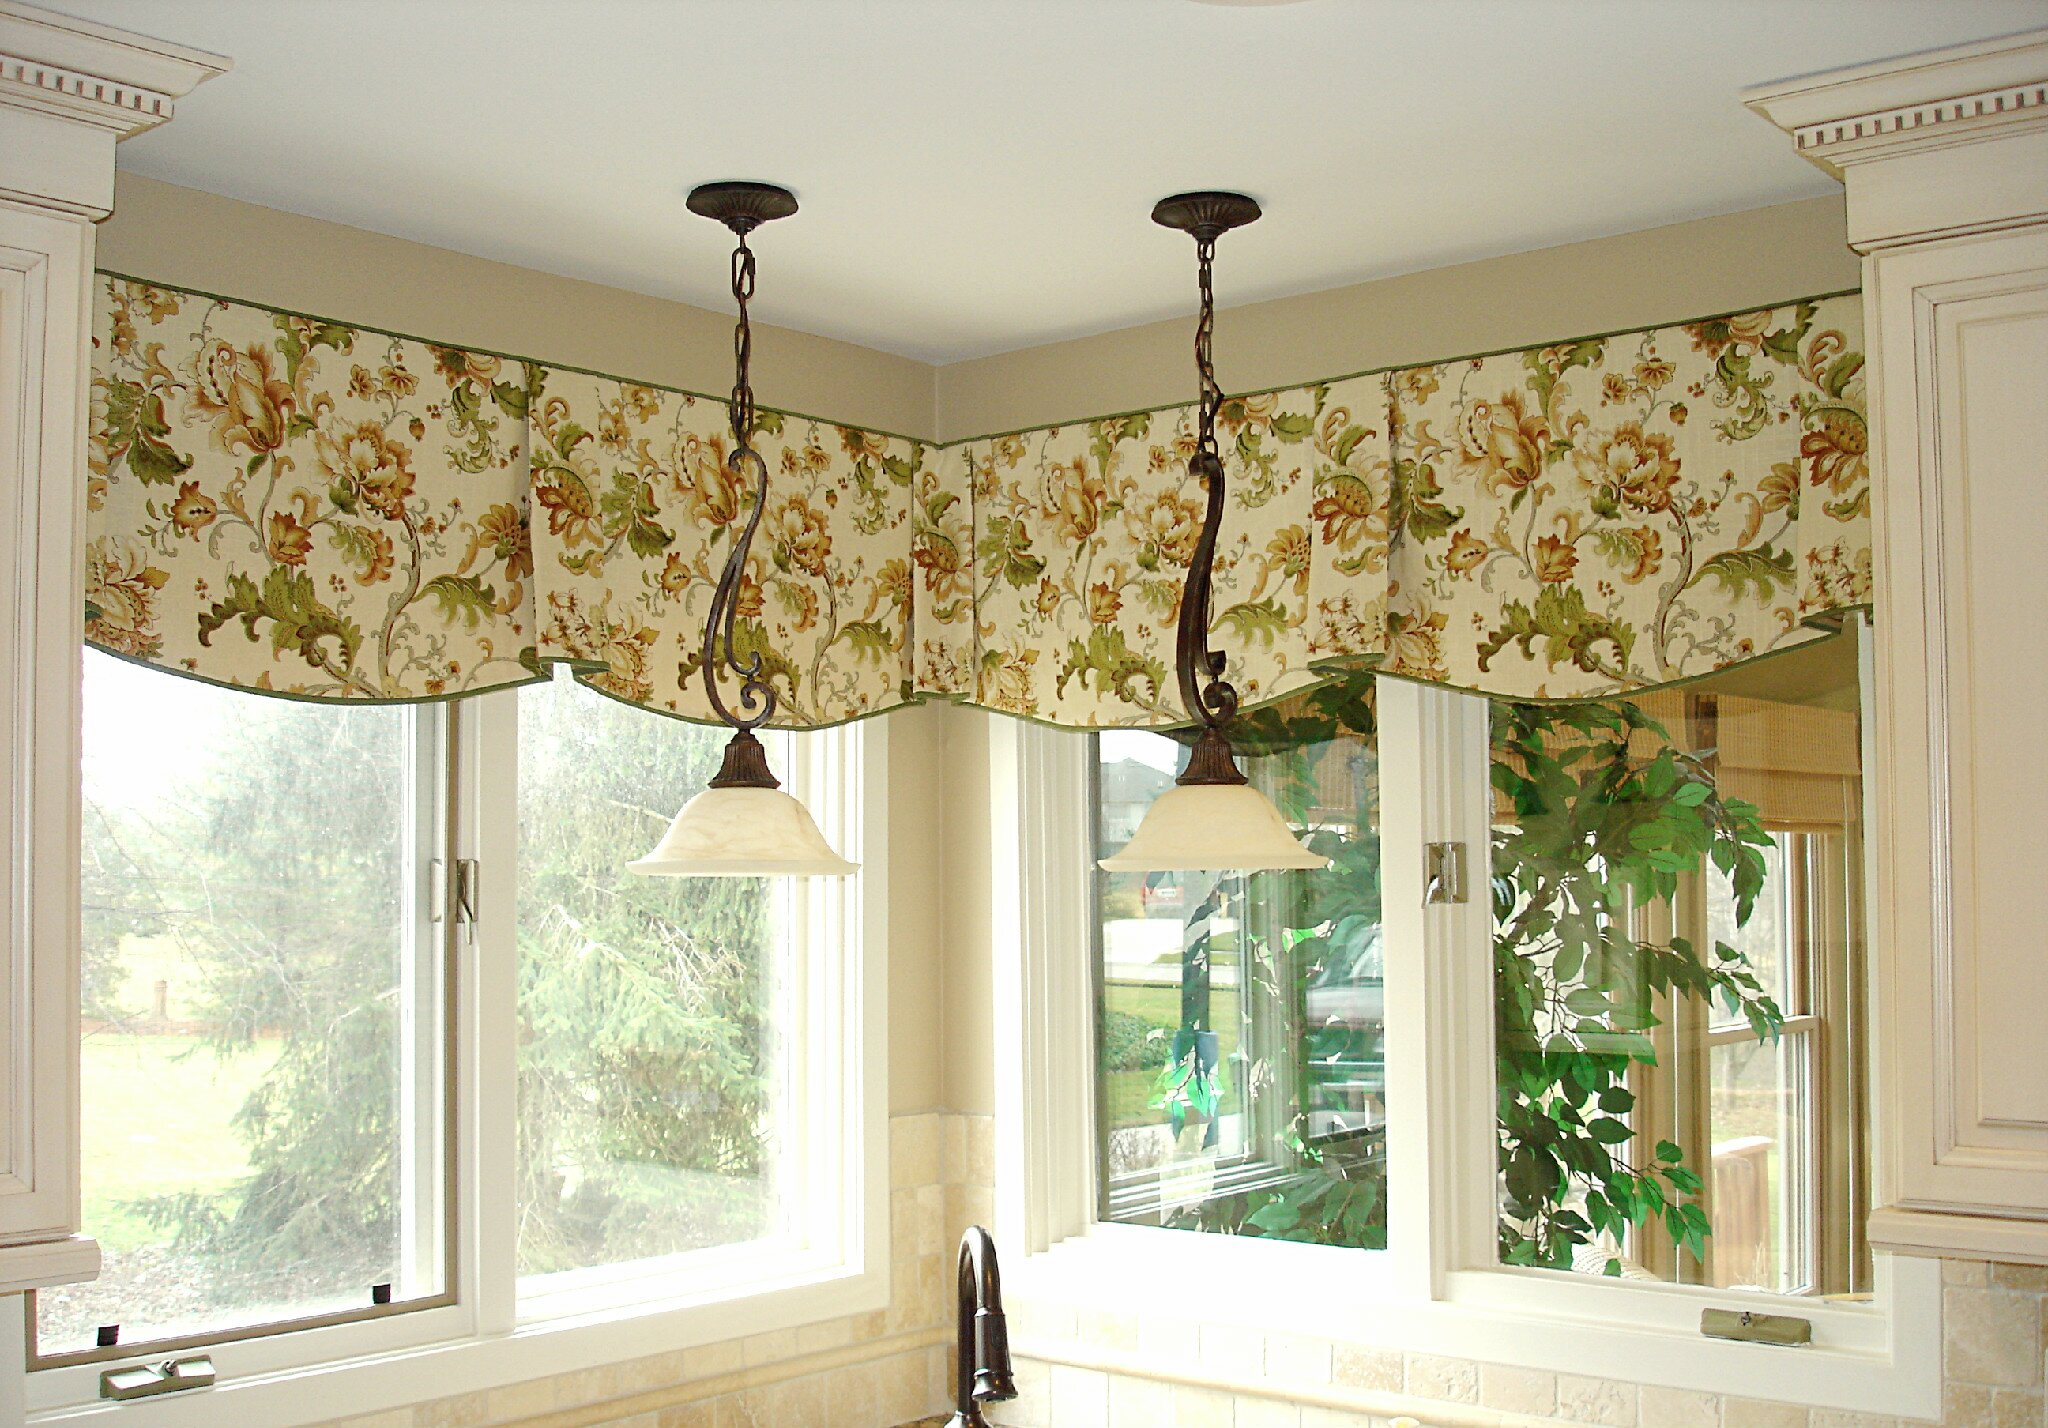 Cute Living Room Valances for Your Home Decorating Ideas: Window Curtains Valances | Living Room Valances | Ascot Valances Window Treatments